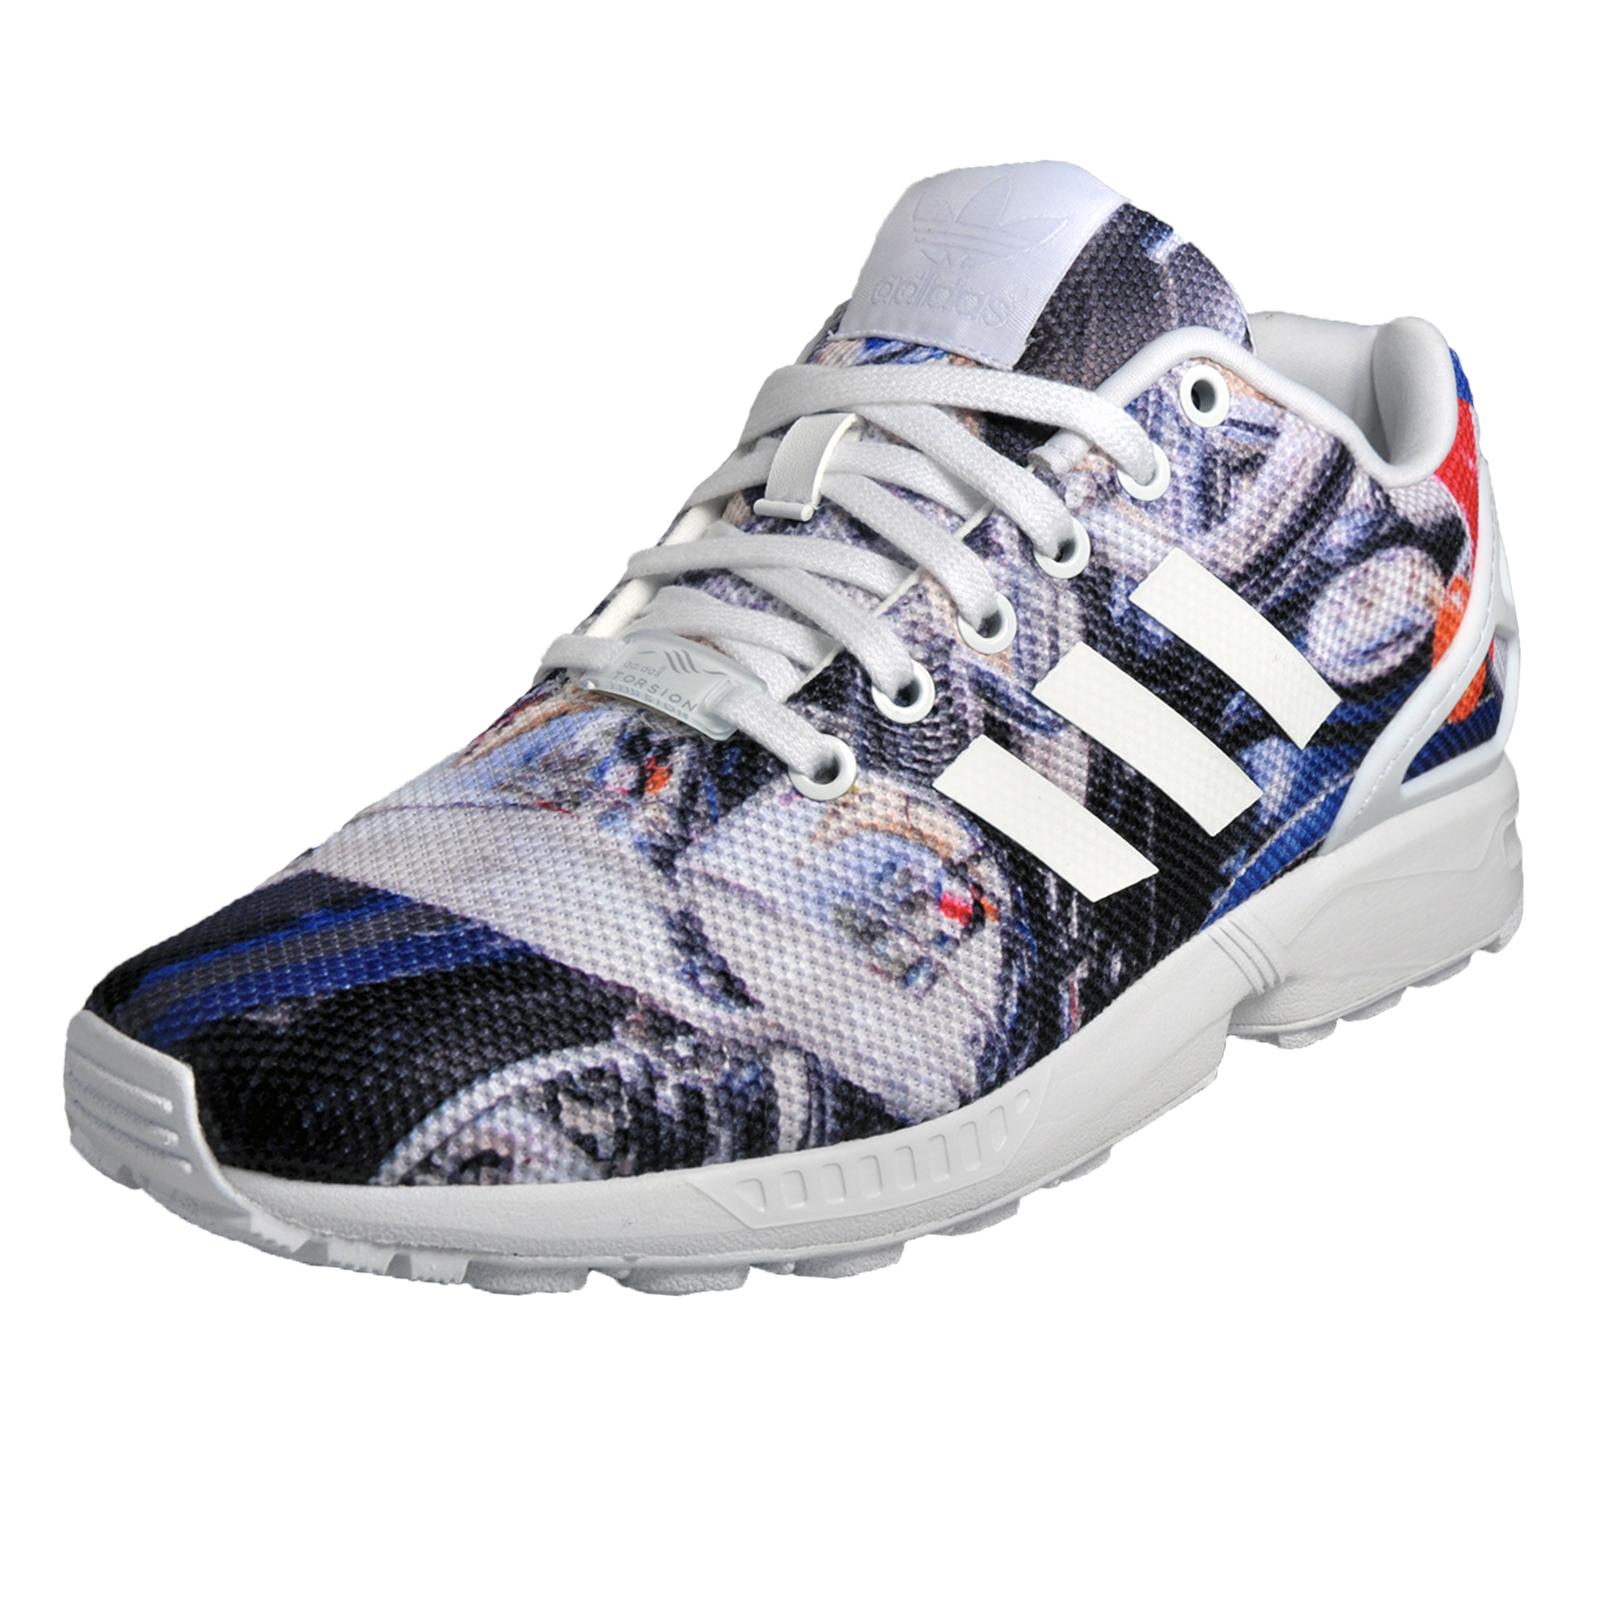 7b1fc2e7efbe4 Details about Adidas Originals ZX Flux Mens Classic Casual Retro Trainers  Multi